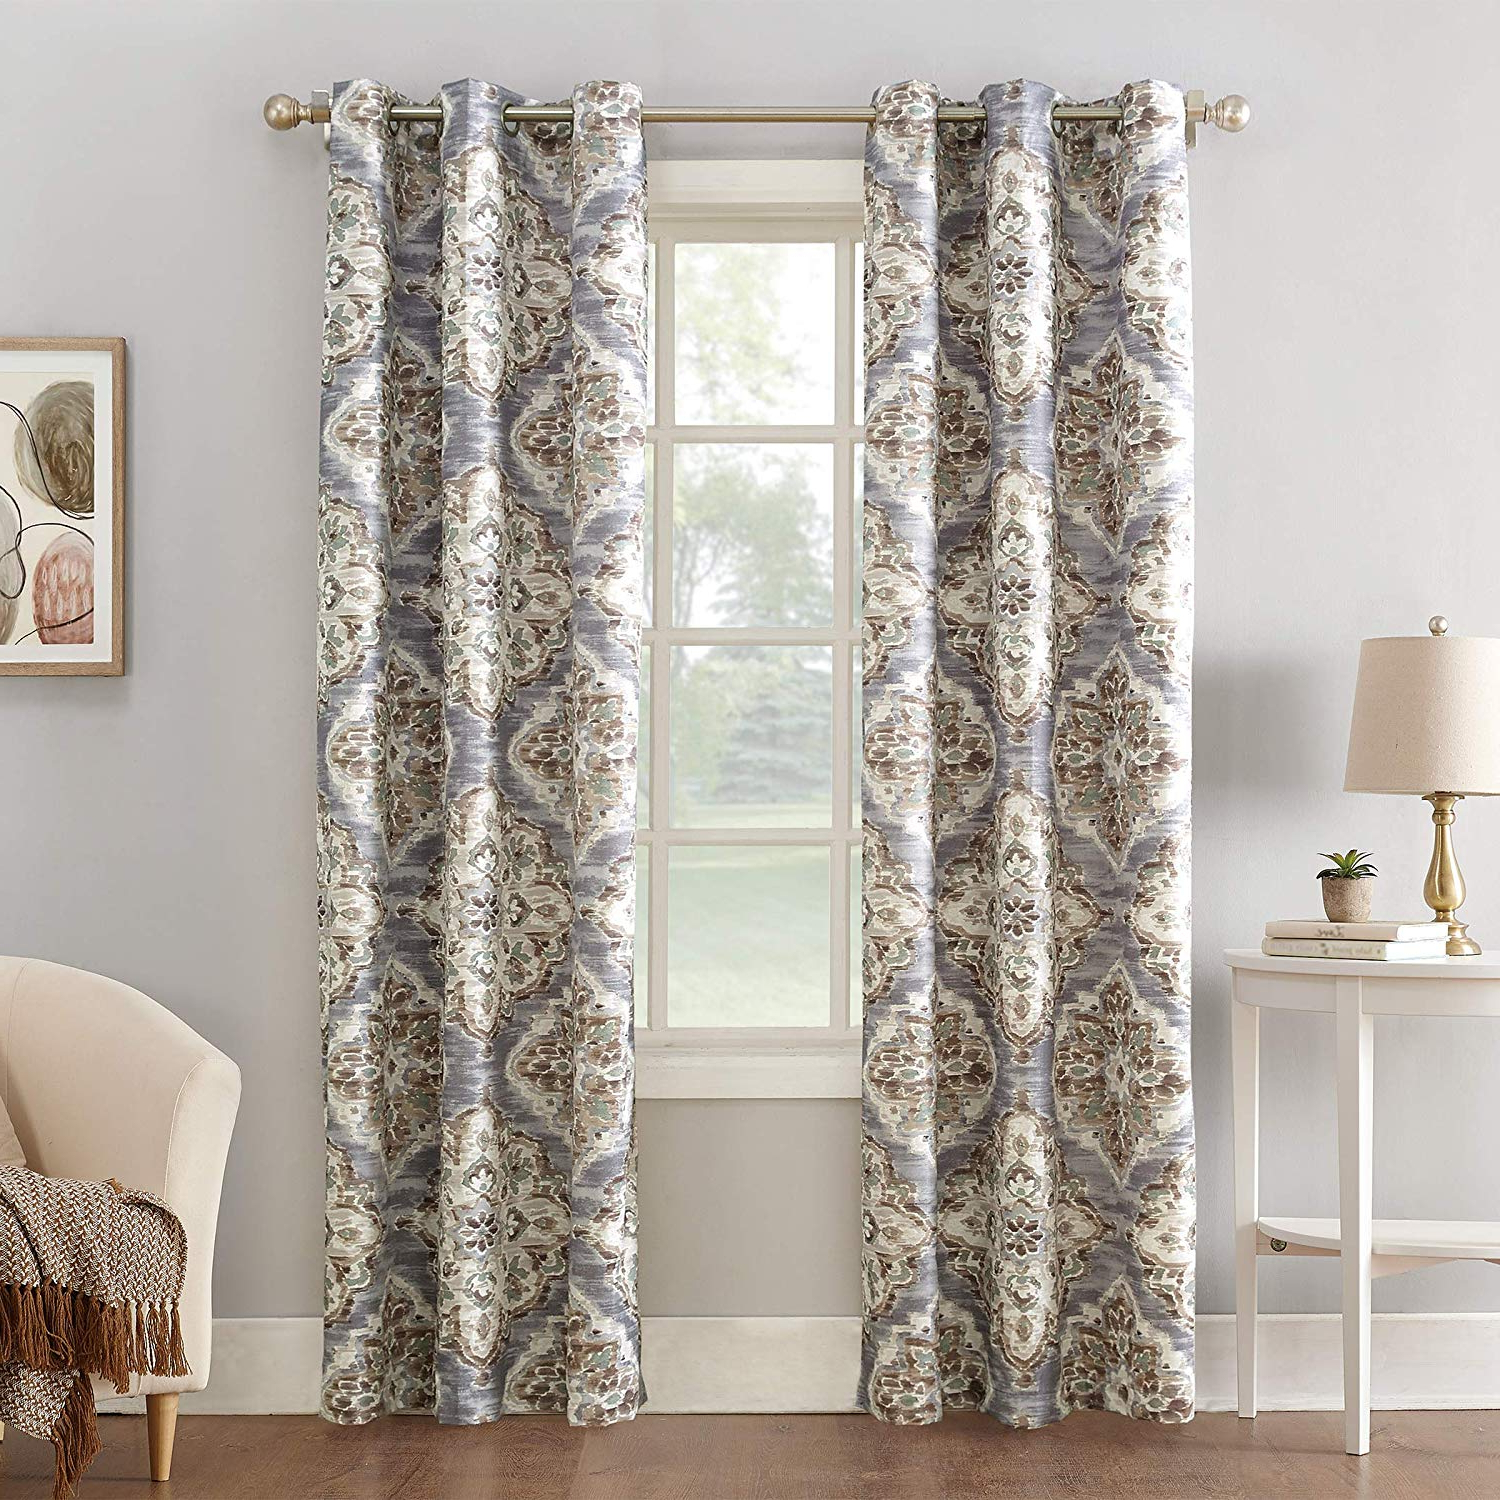 "Cooper Textured Thermal Insulated Grommet Curtain Panels With Regard To Preferred Sun Zero Cooper Floral Watercolor Thermal Insulated Room Darkening Grommet Curtain Panel 40"" X 63"" Gray (View 14 of 20)"